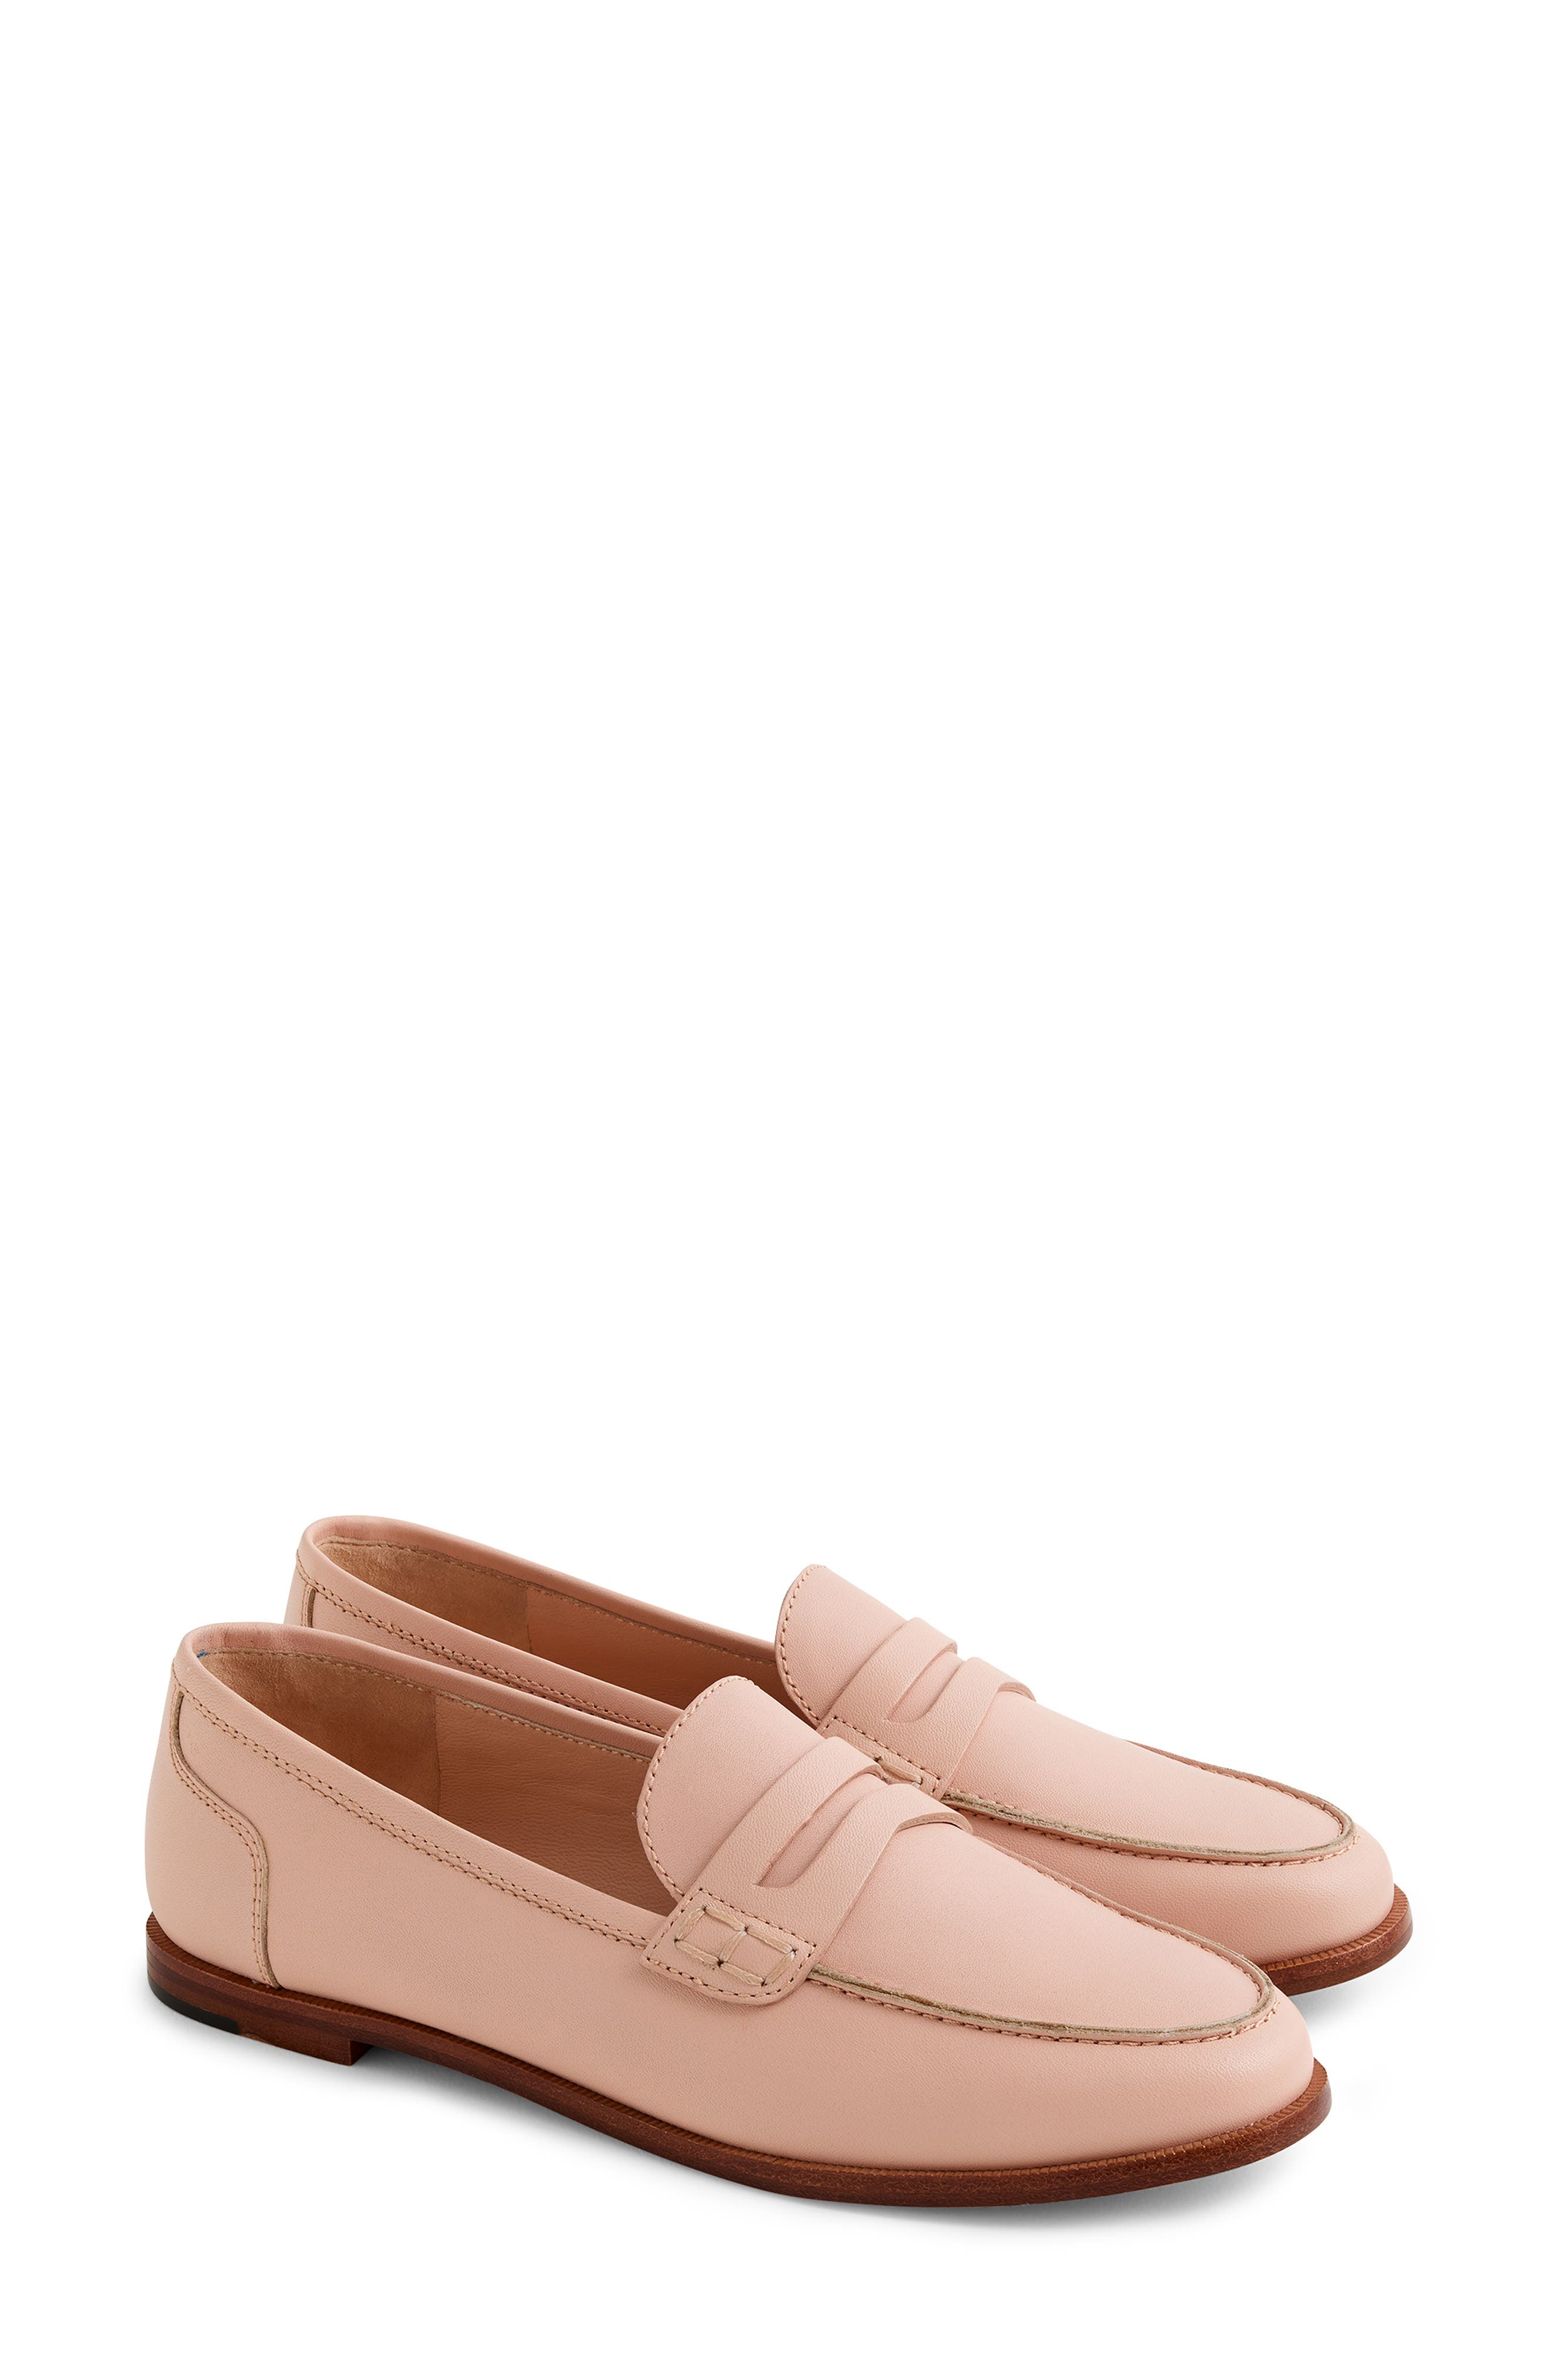 1d7dc1171f6 Women s J.Crew Shoes